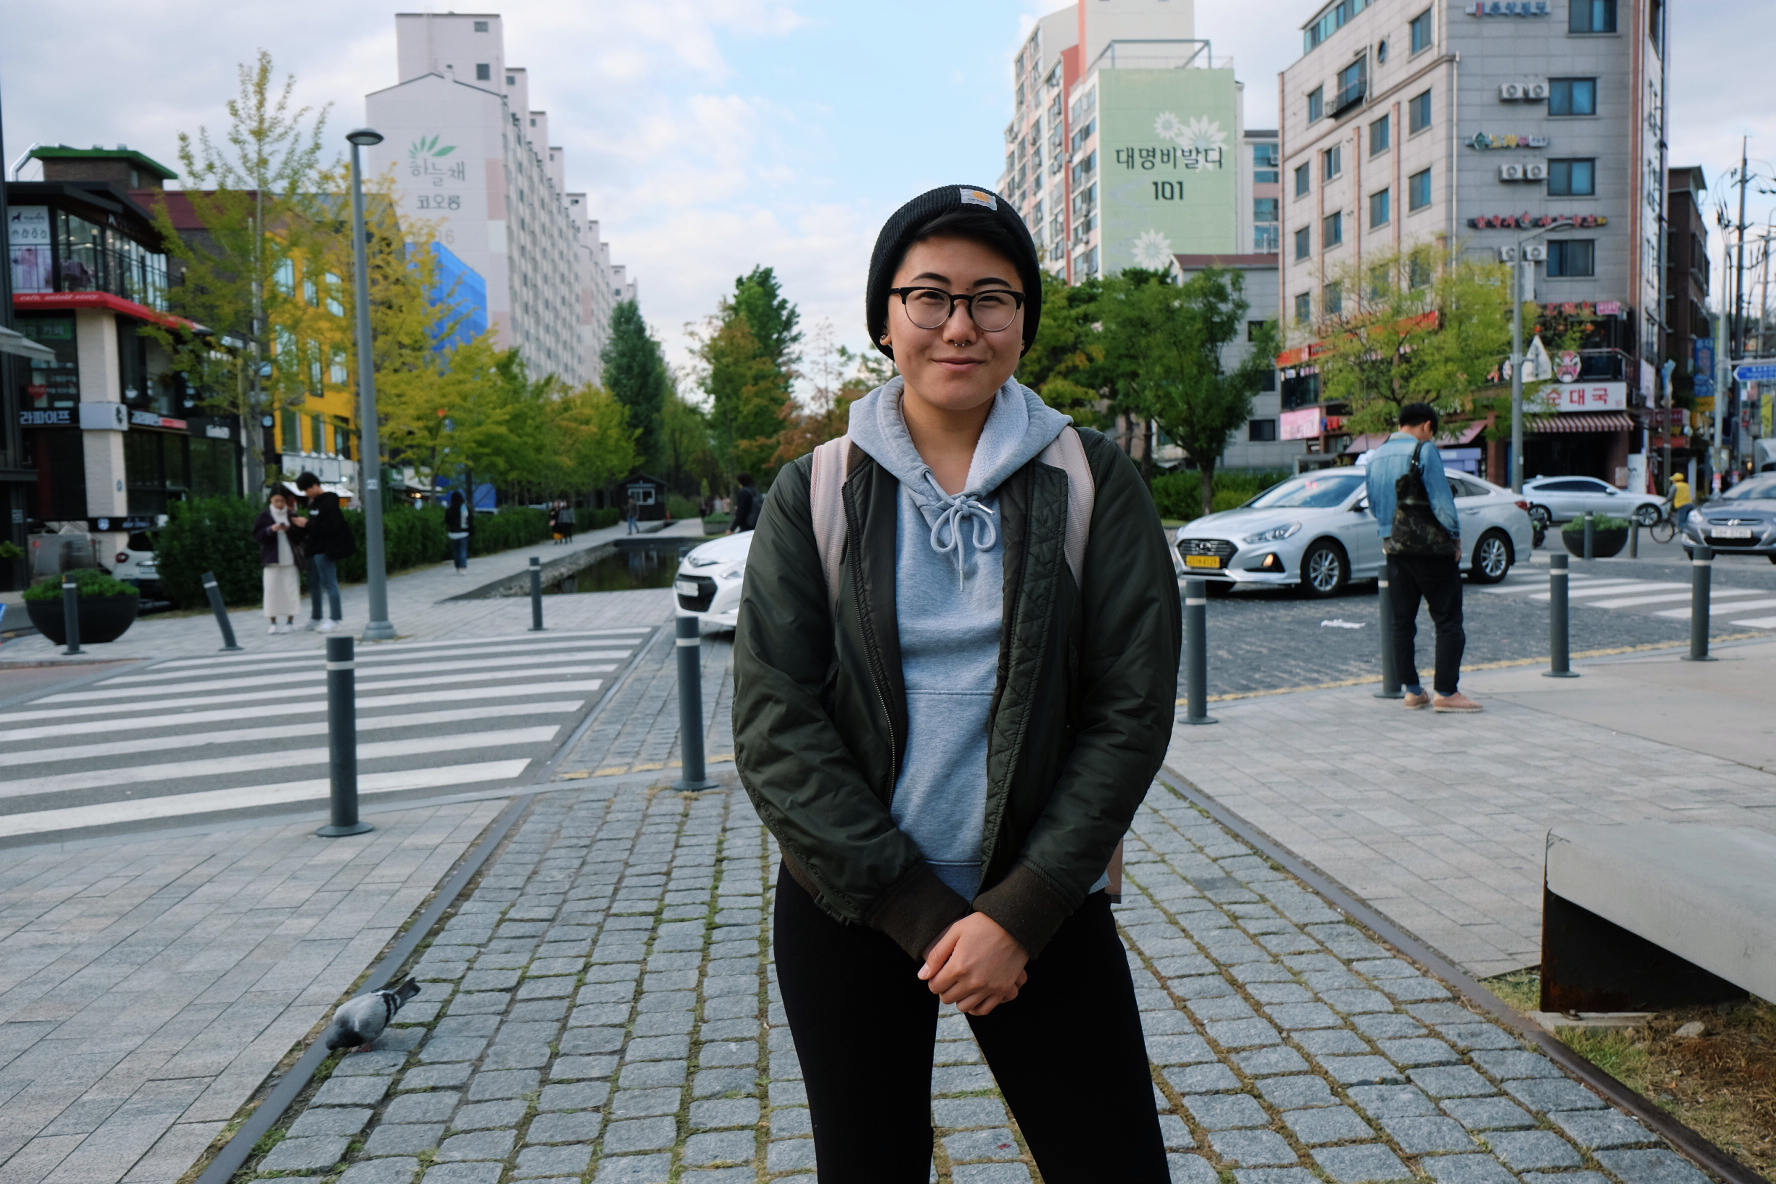 Photo of Tori Hong standing in a city.